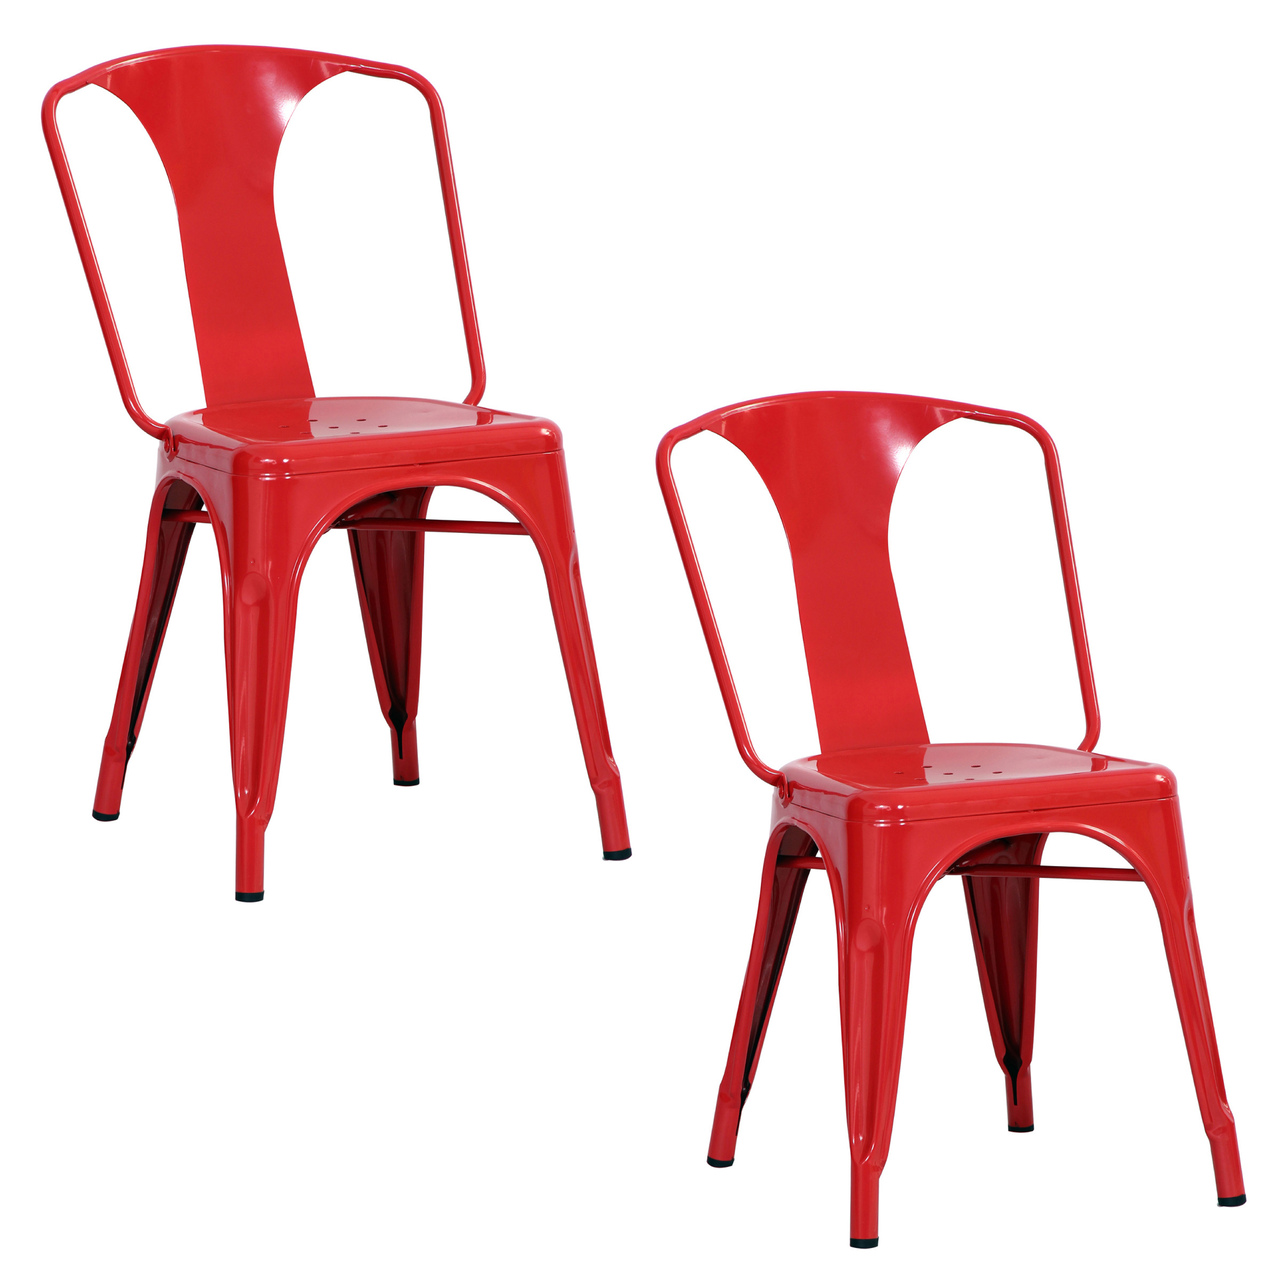 AmeriHome BS3530RSET 2 Piece Metal Dining Chair Set - Red